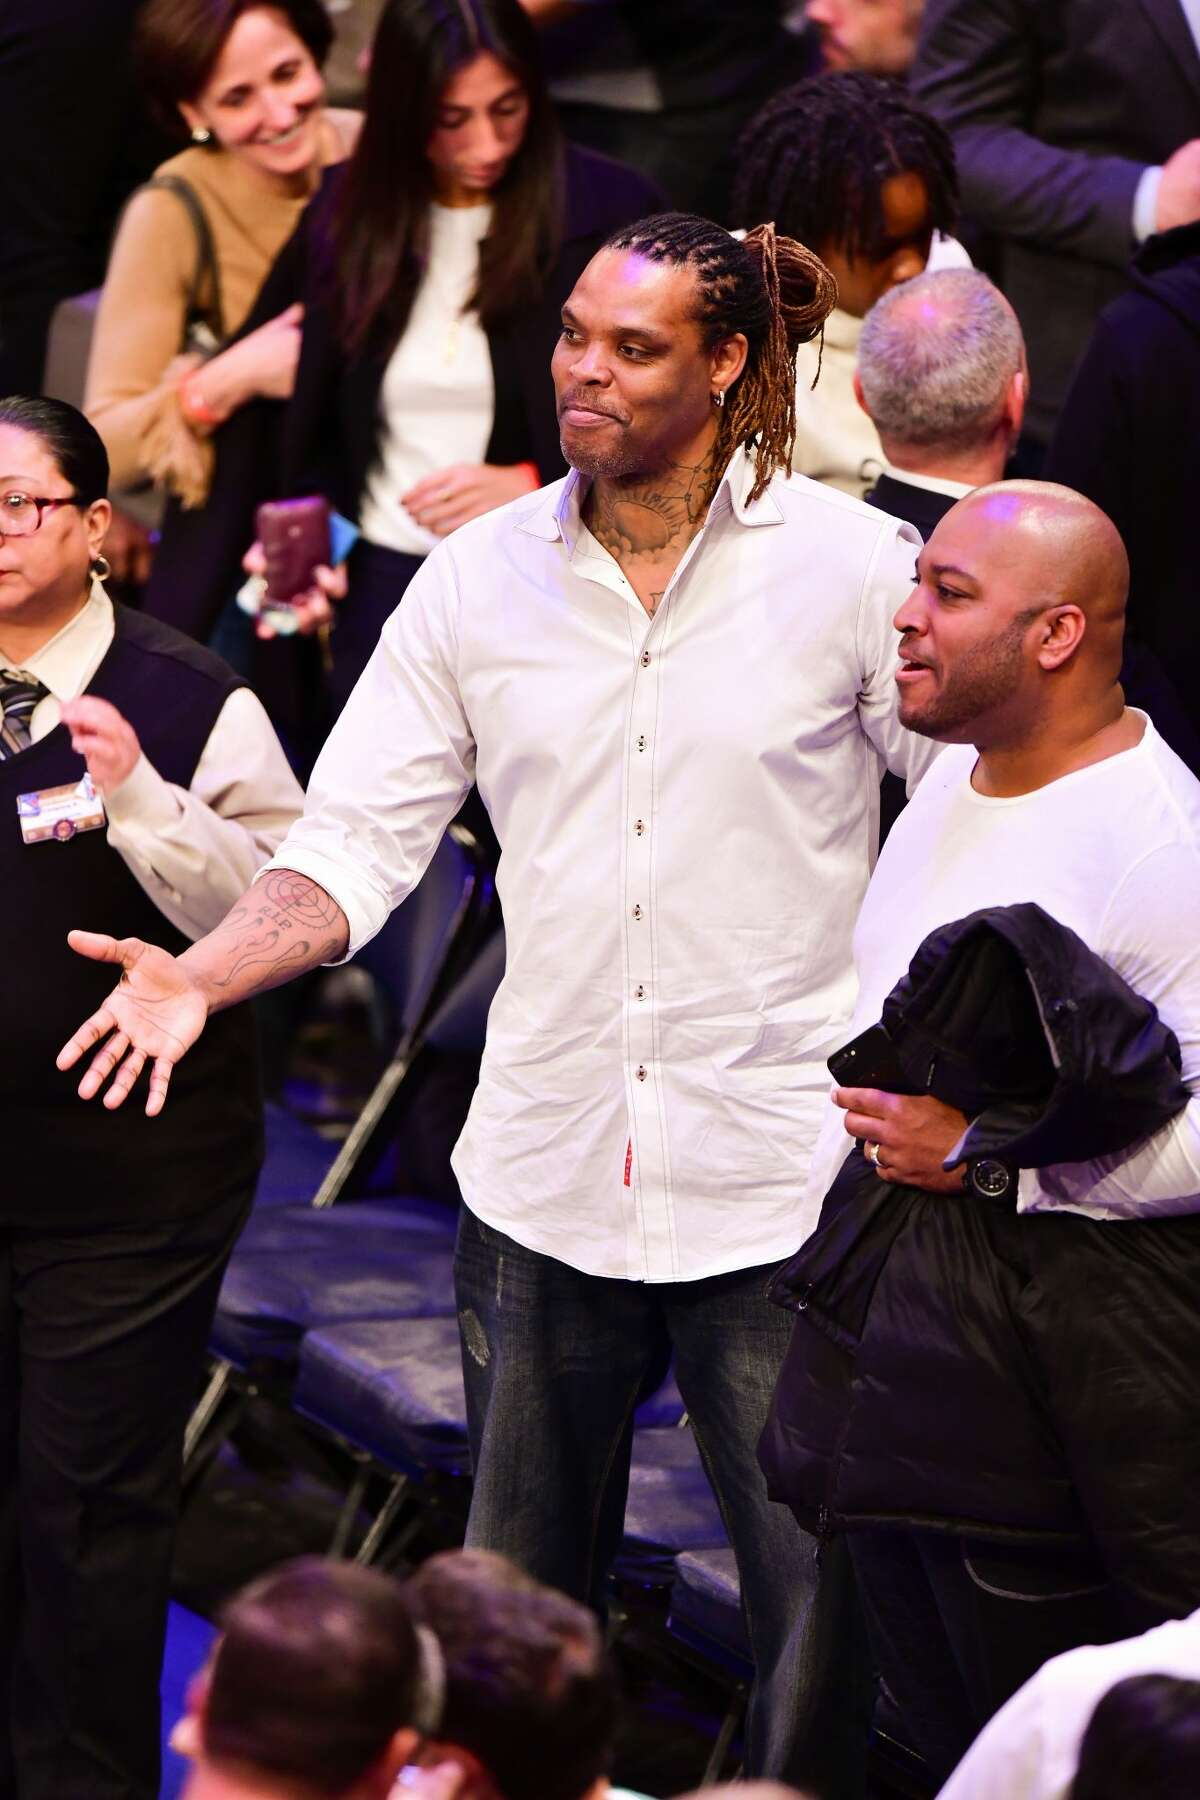 NOW: Latrell Sprewell's back in the public eye ... in New York After years of going low-profile, Sprewell's becoming a fixture at Knicks games in New York. Here he is on Nov. 13 at the Cavs-Knicks game.